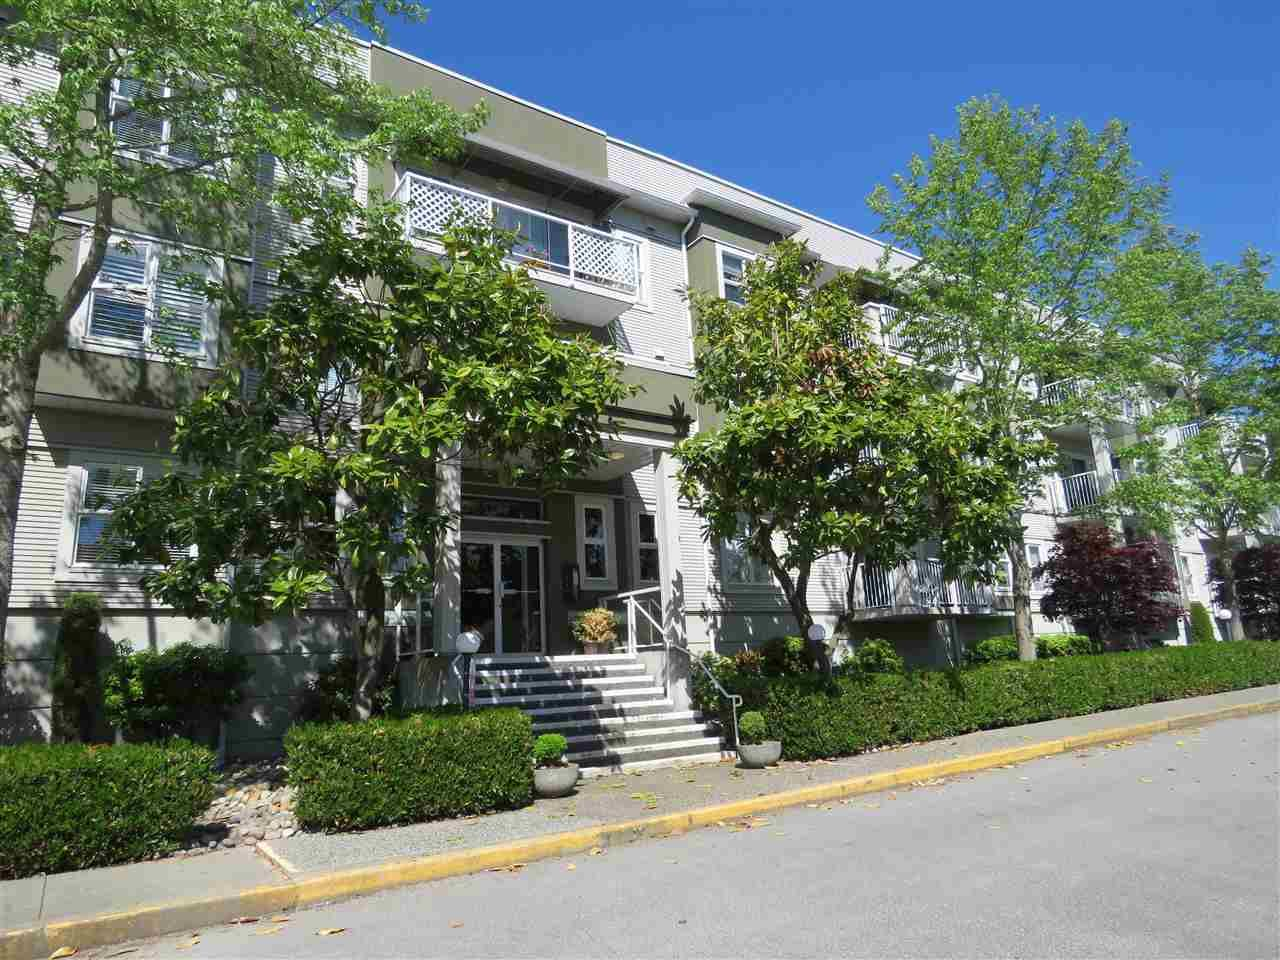 "Main Photo: 112 4738 53 Street in Delta: Delta Manor Condo for sale in ""SUNNINGDALE ESTATES"" (Ladner)  : MLS®# R2193673"